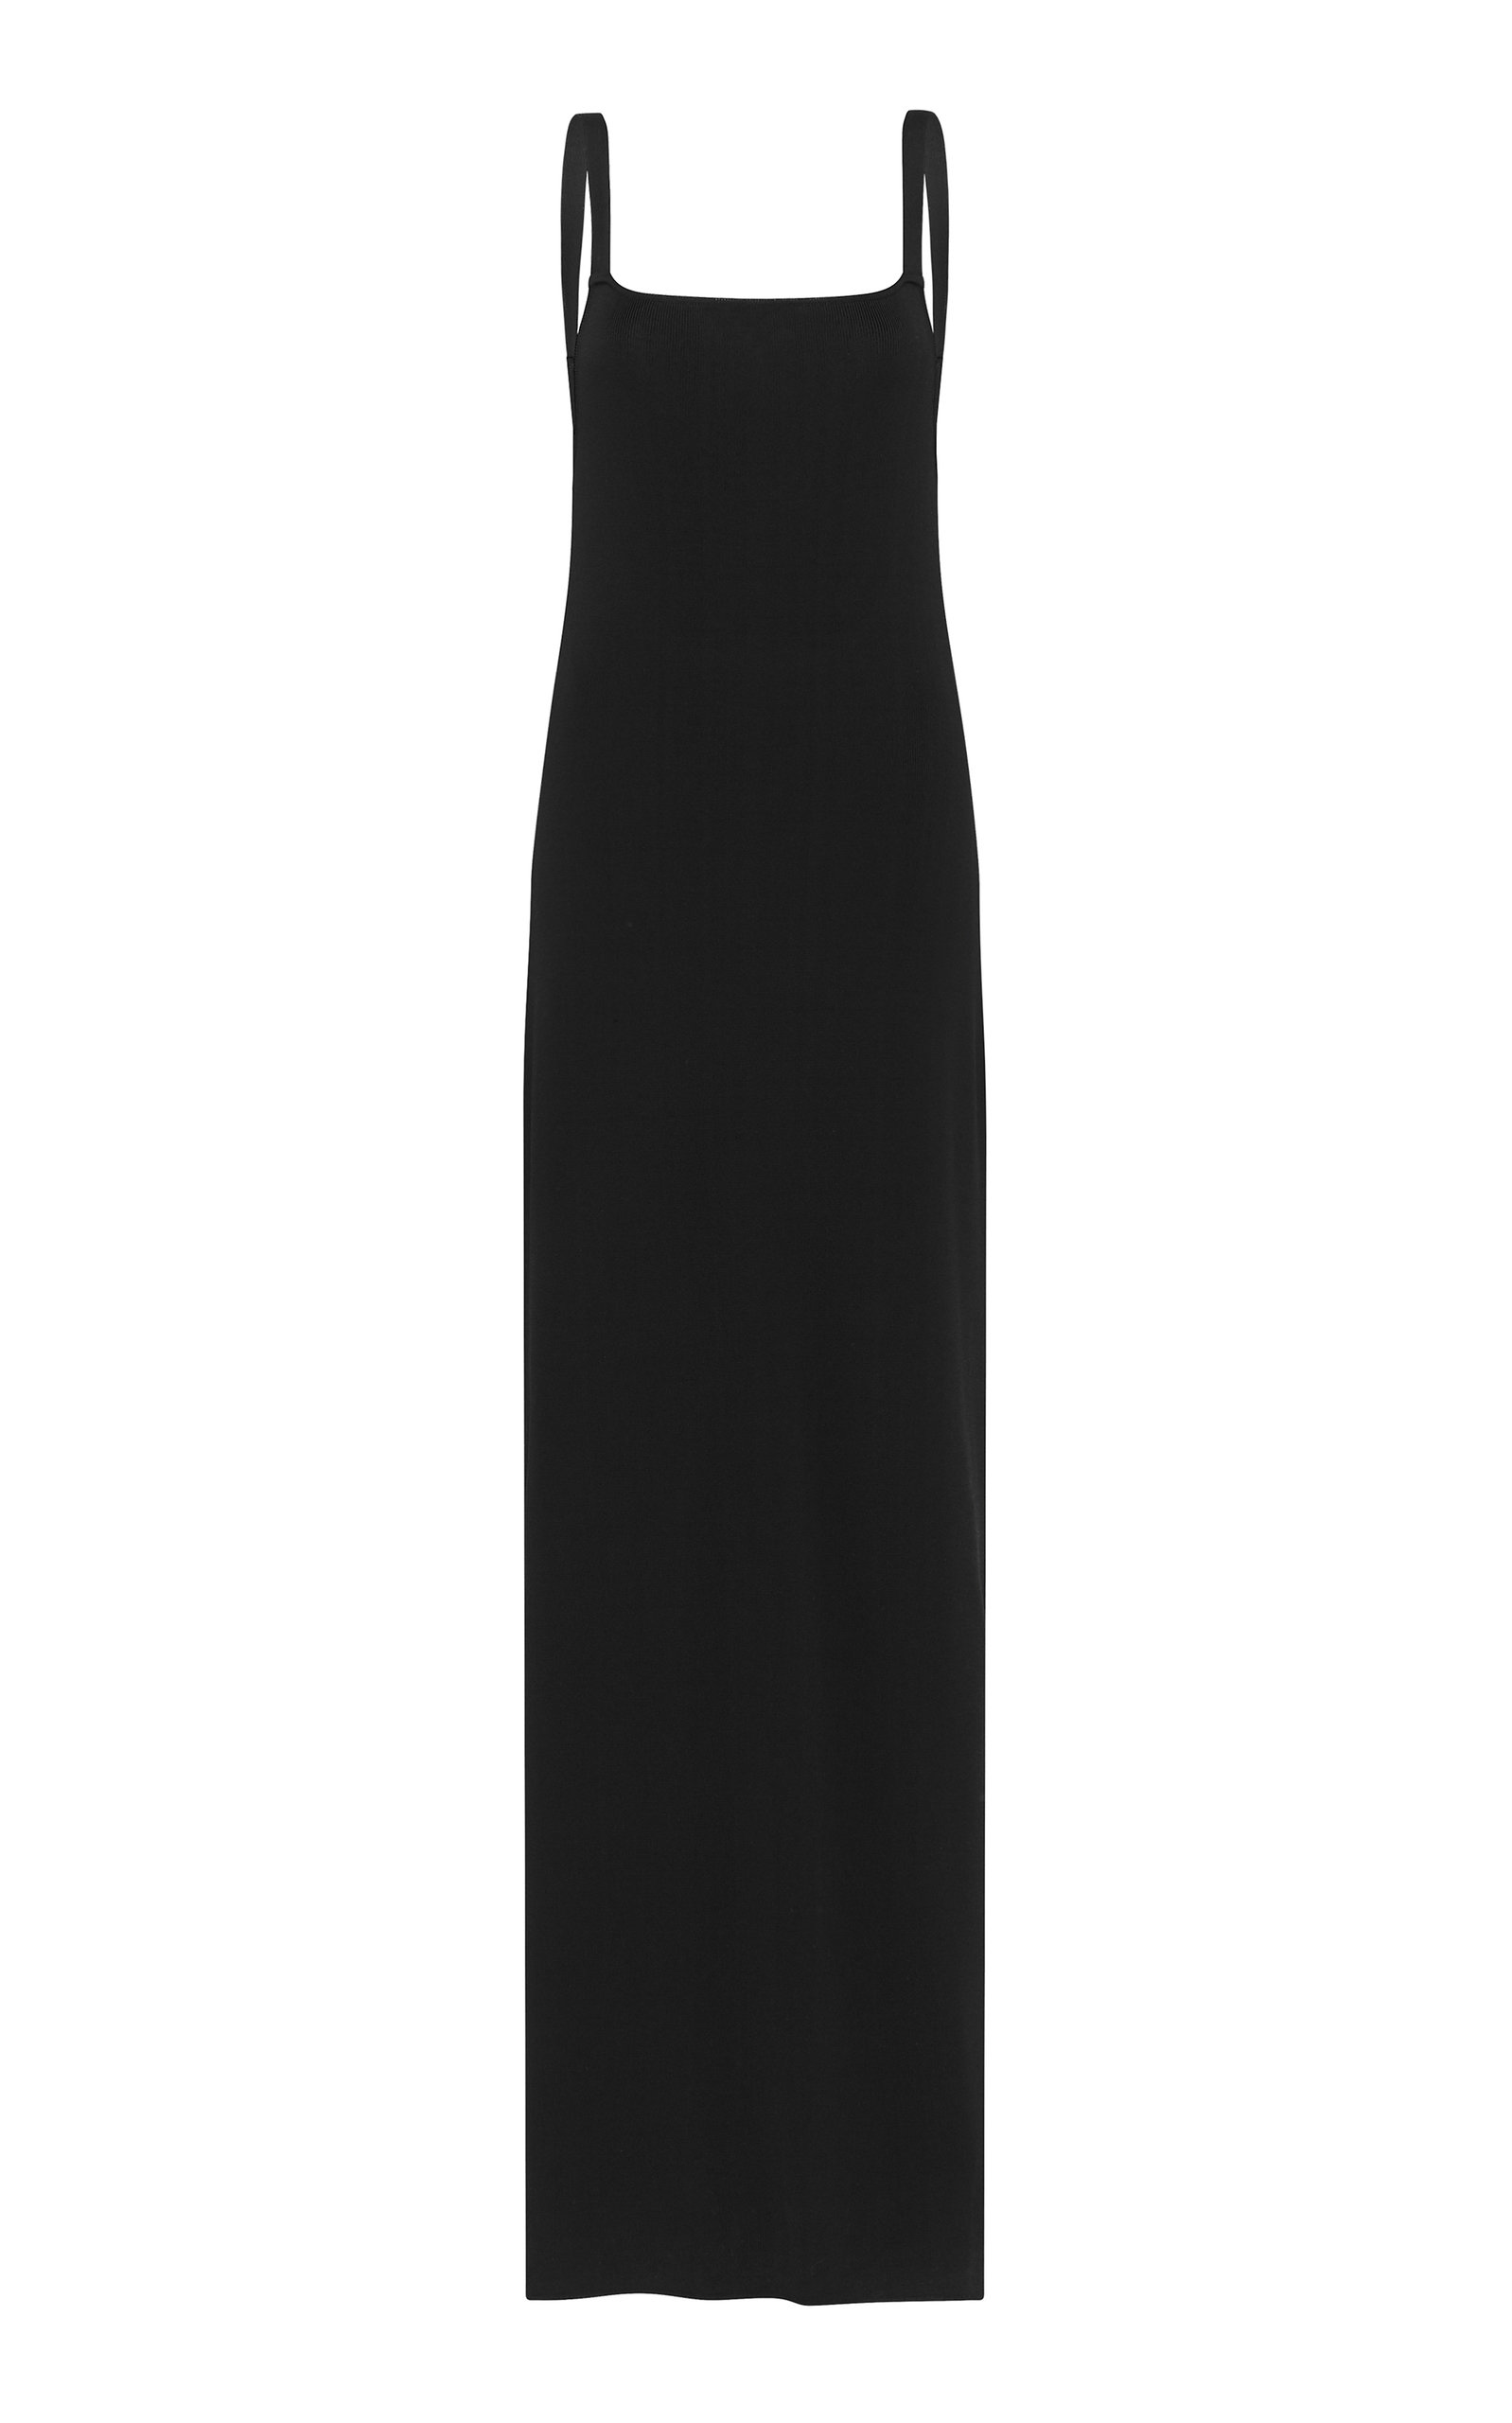 Buy Matteau Sleeveless Open Back Knit Dress online, shop Matteau at the best price